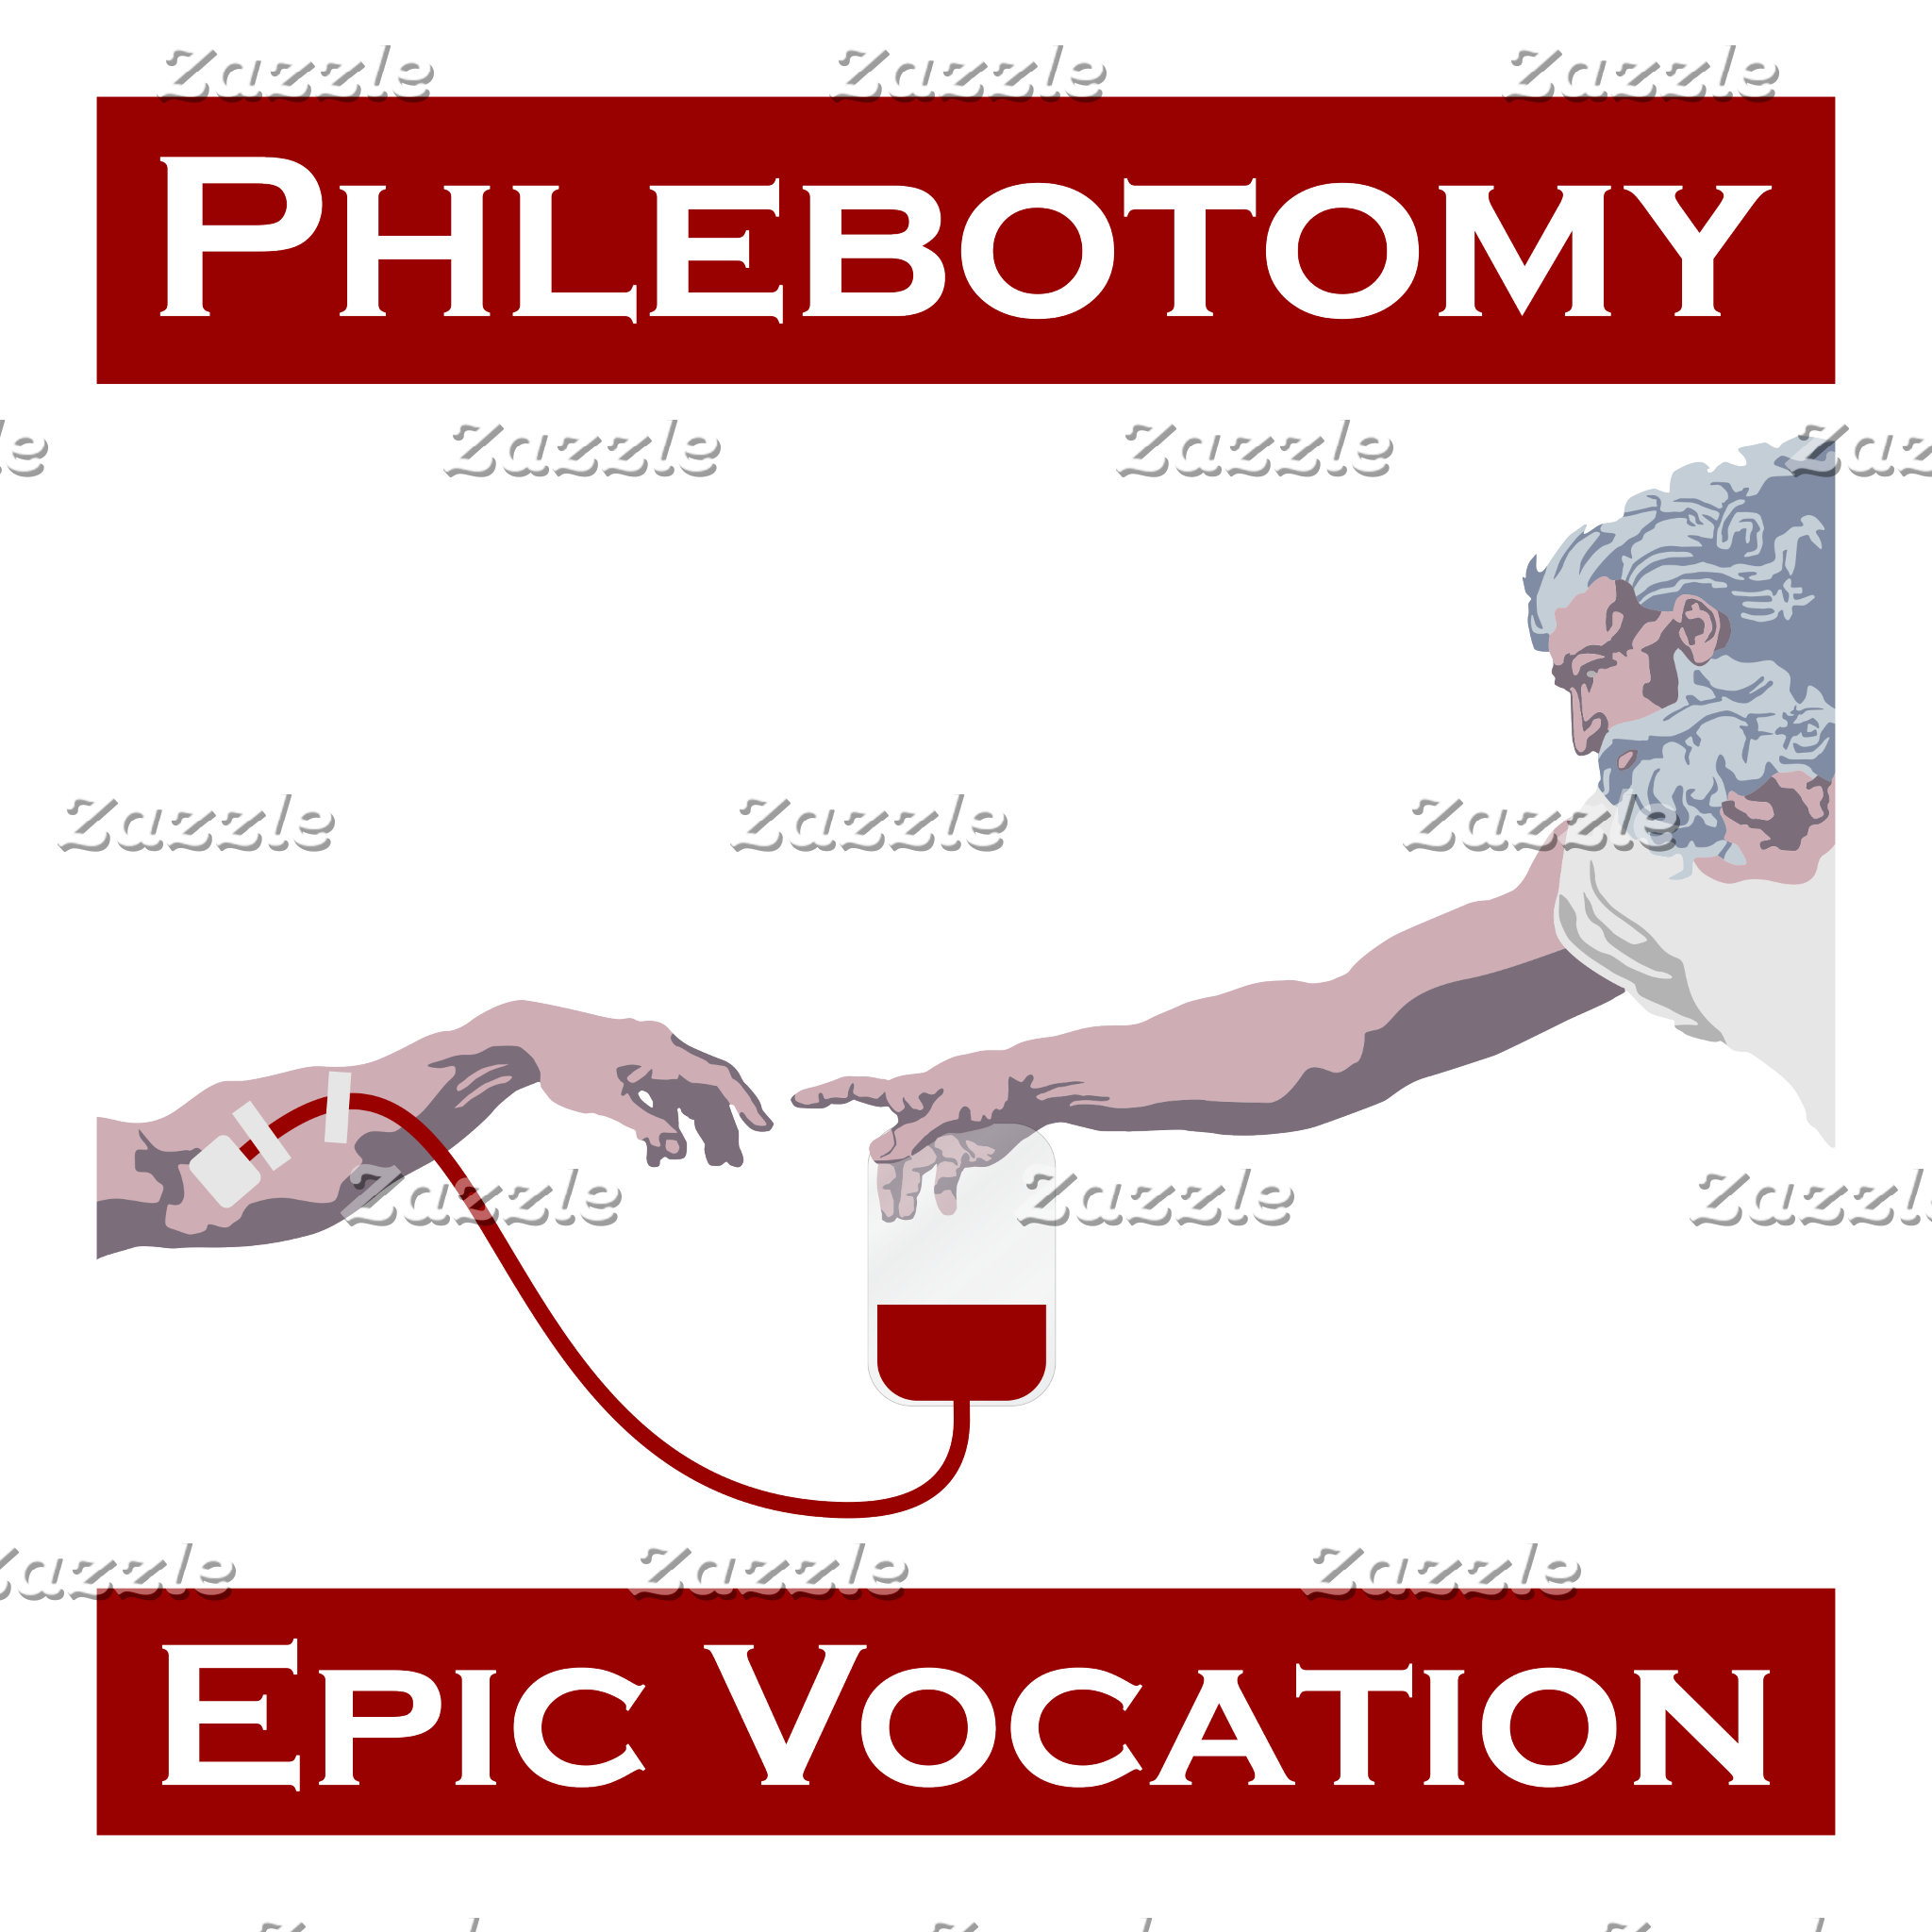 Phlebotomy, Epic Vocation